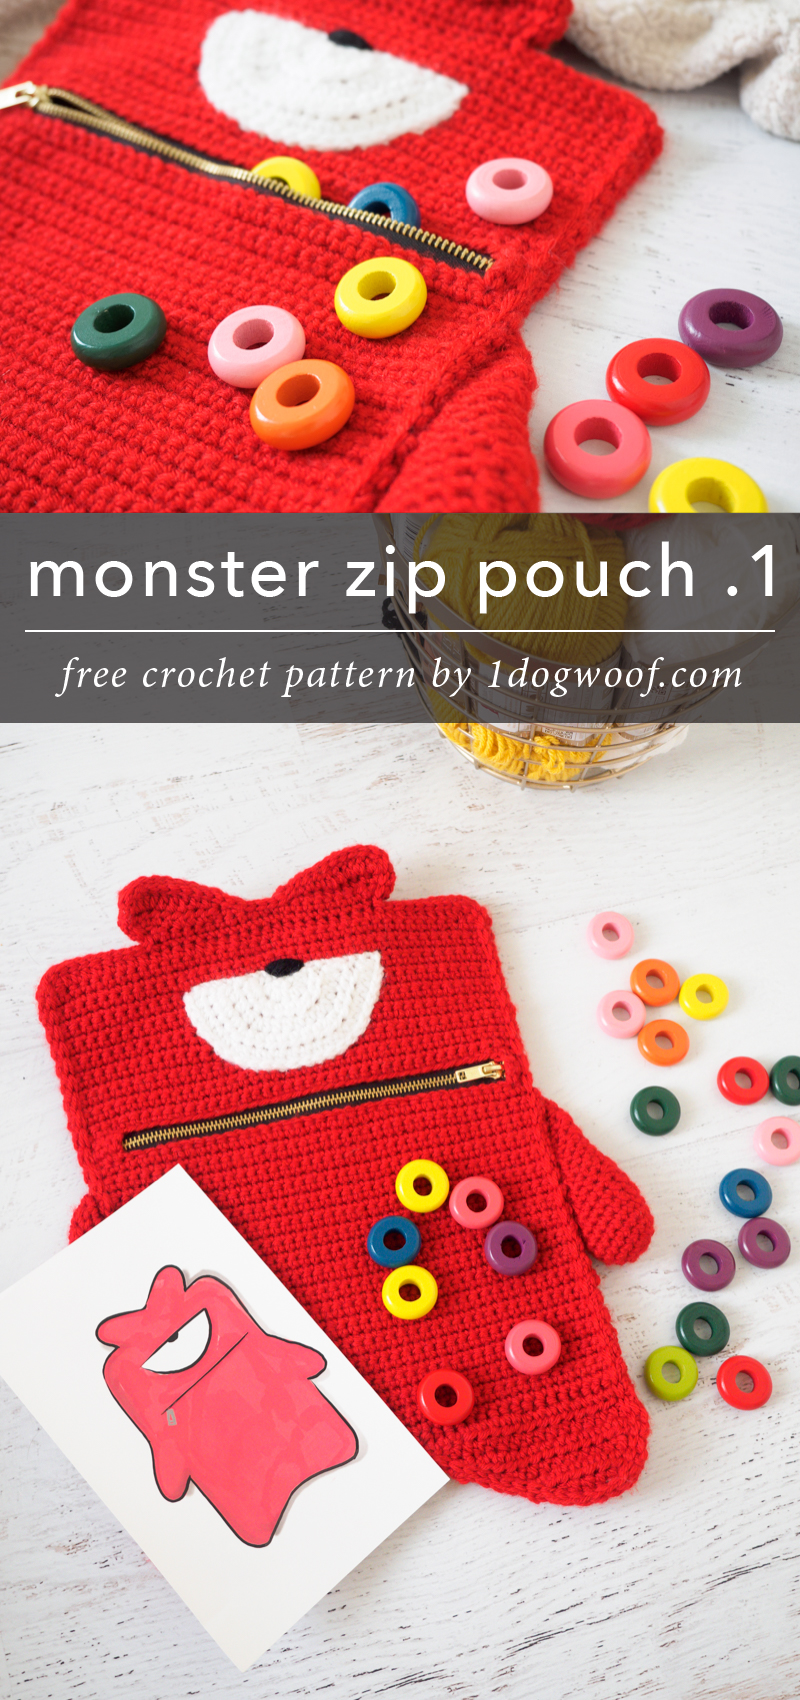 Kelvin the red monster zip pouch as a fun gift for kids!